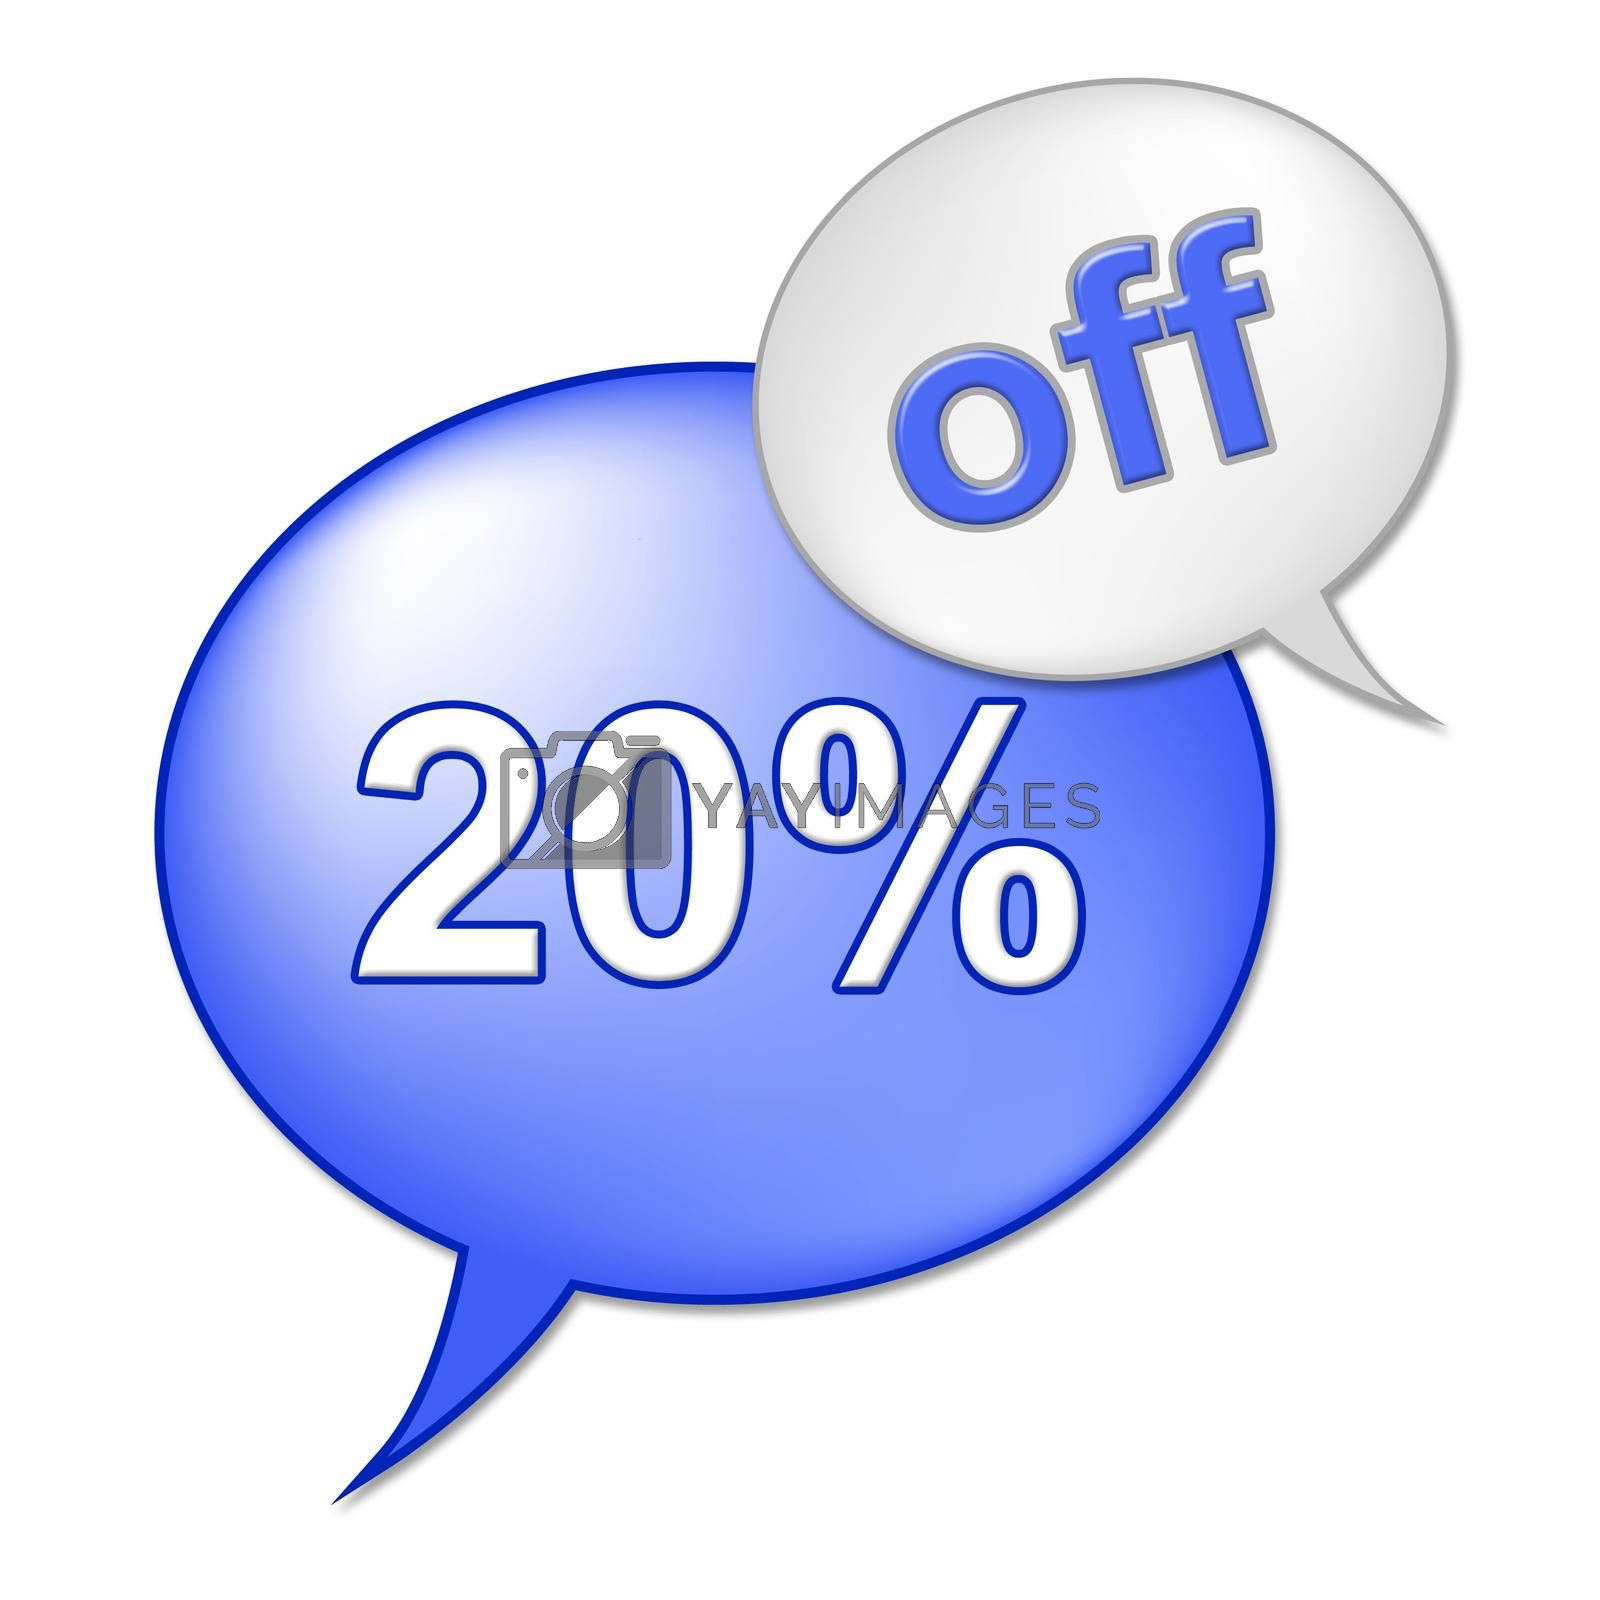 Twenty Percent Off Means Reduction Retail And Closeout by stuartmiles